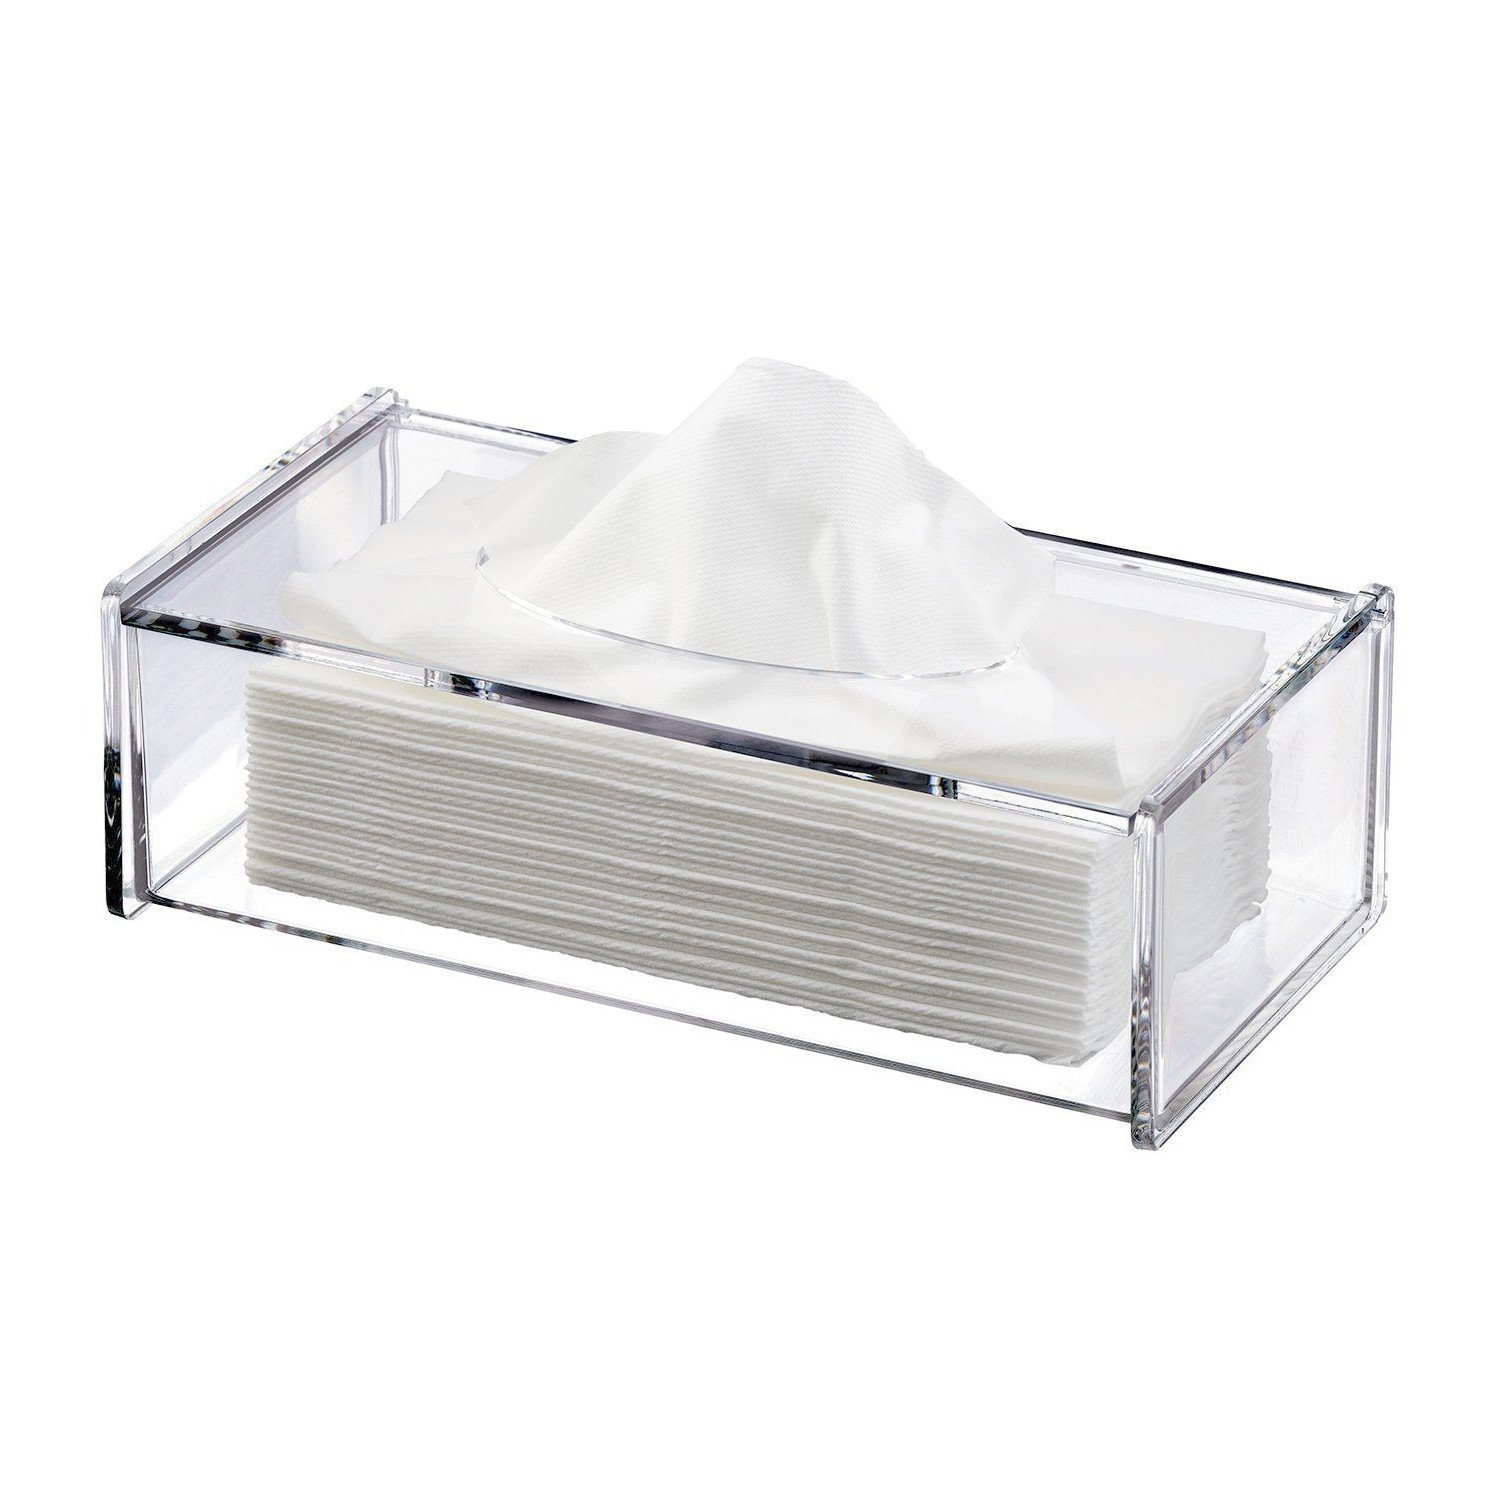 Discoball Acrylic Tissue Box Cover Clear Tissue Holder Tissue Dispenser